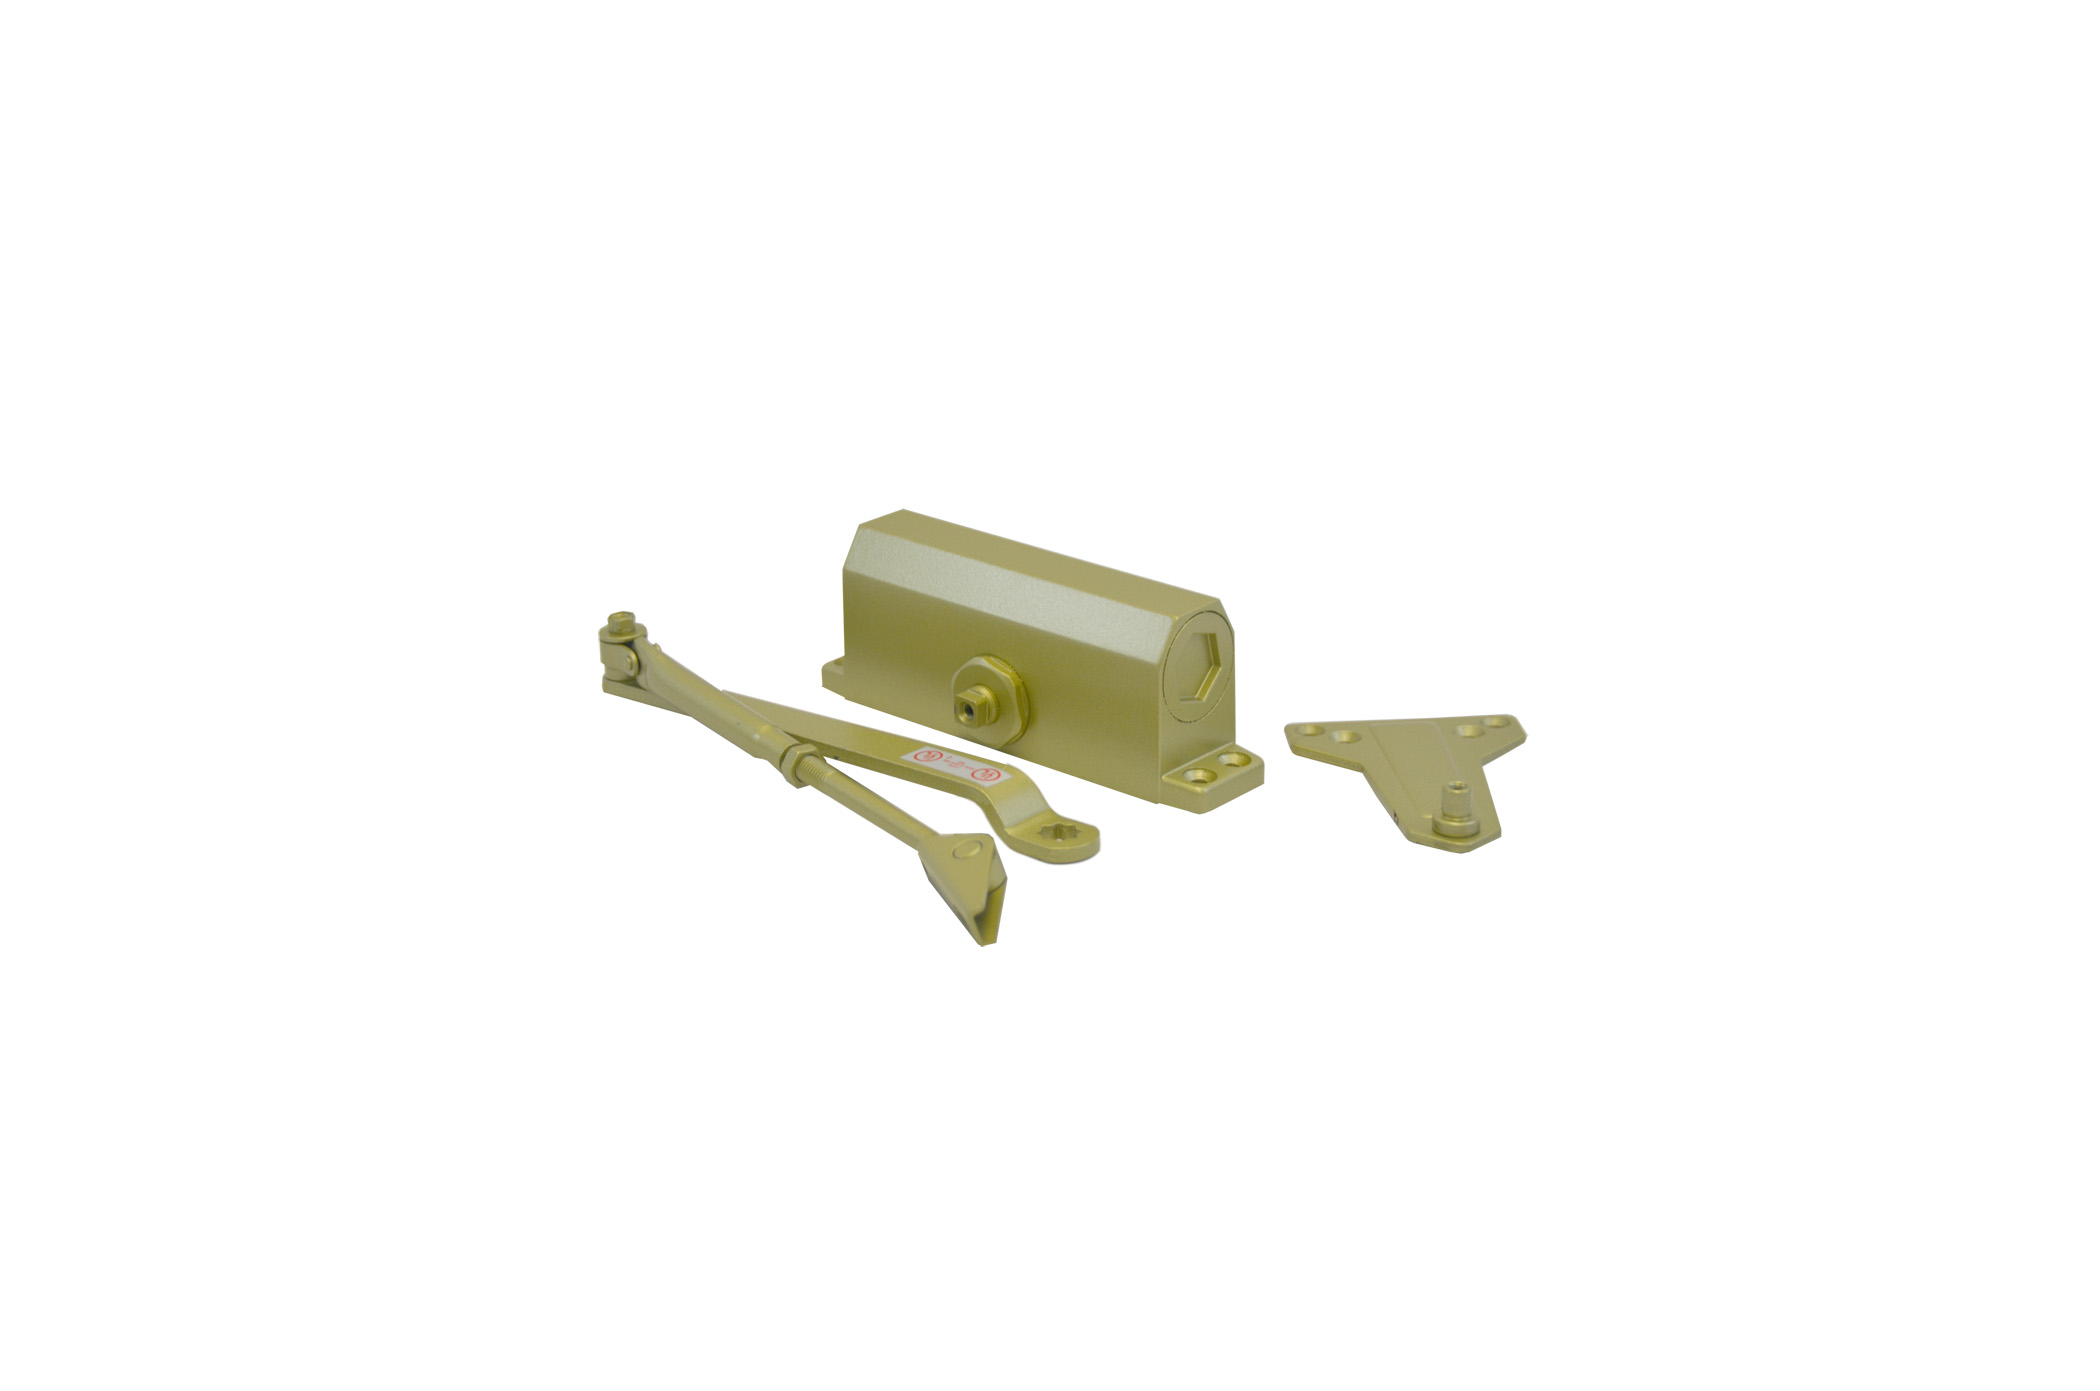 652bp Dorex Door Closer The Hardware Pro